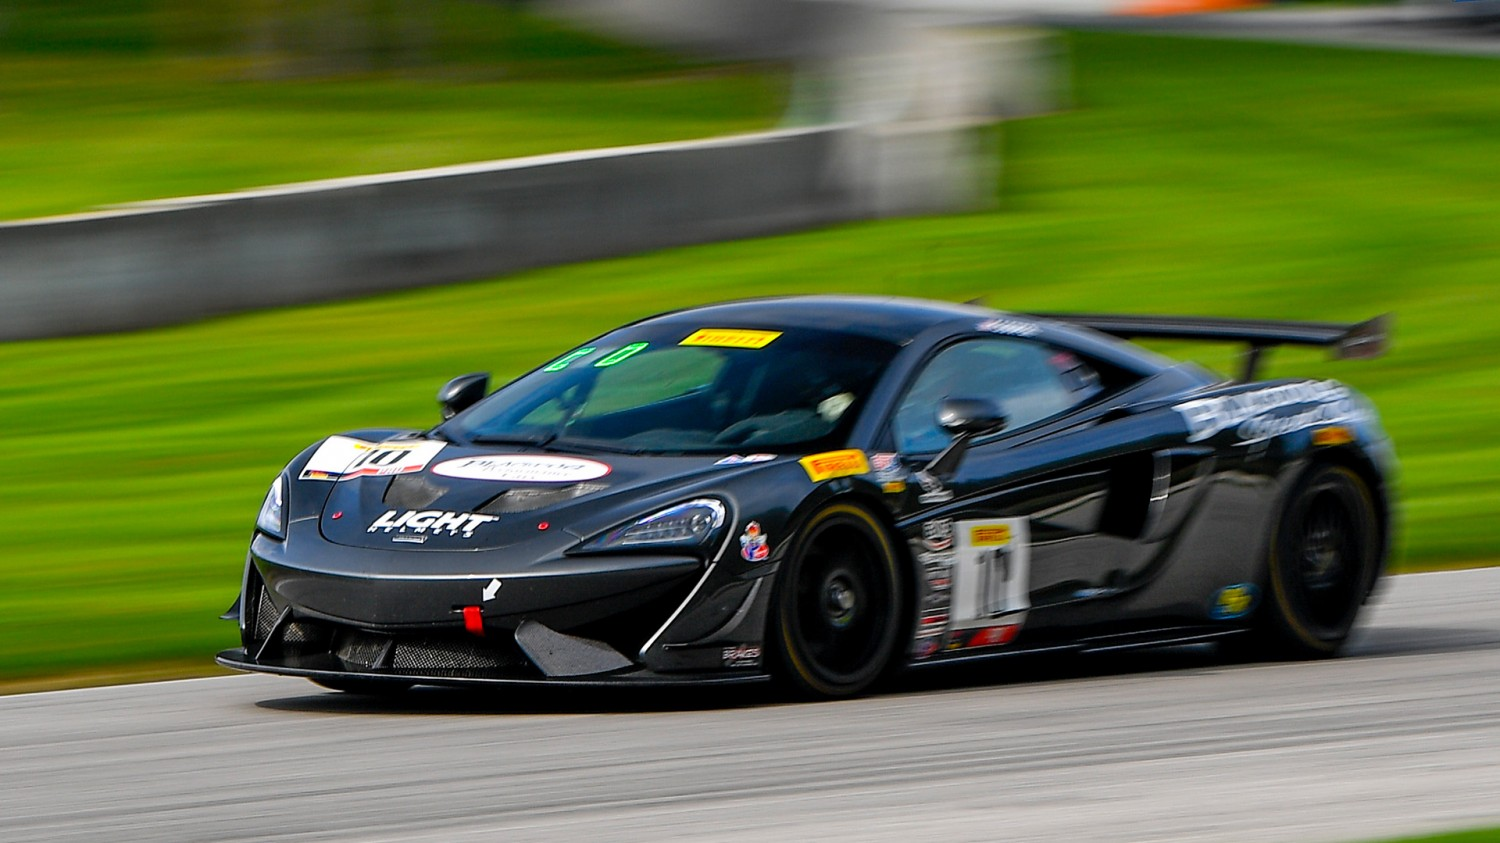 Cooper Claims Victory for Pirelli GT4 America Sprint Race 1 at Road America